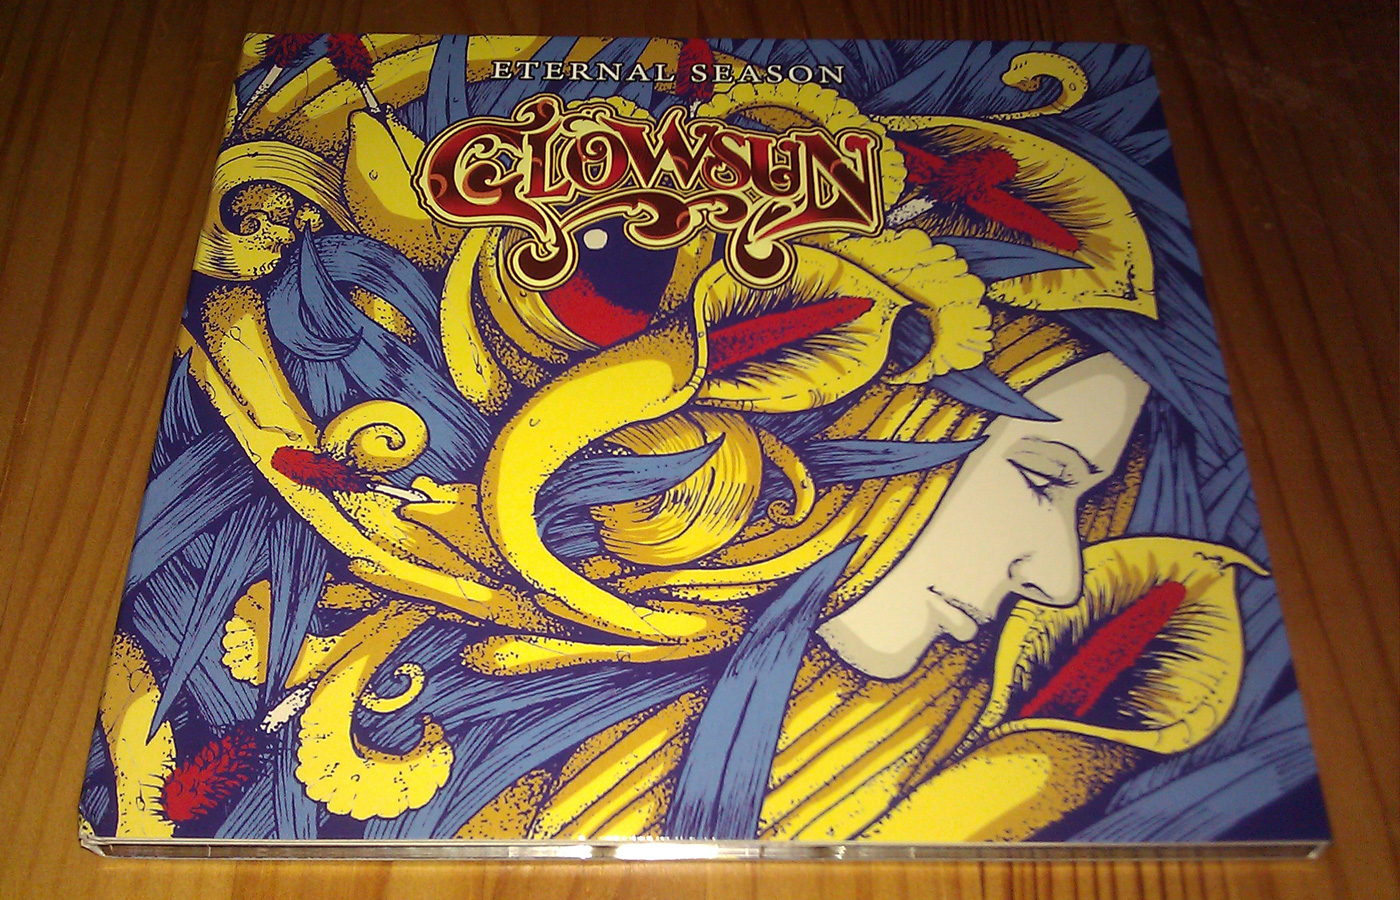 glowsun-eternal-season-cd-cover